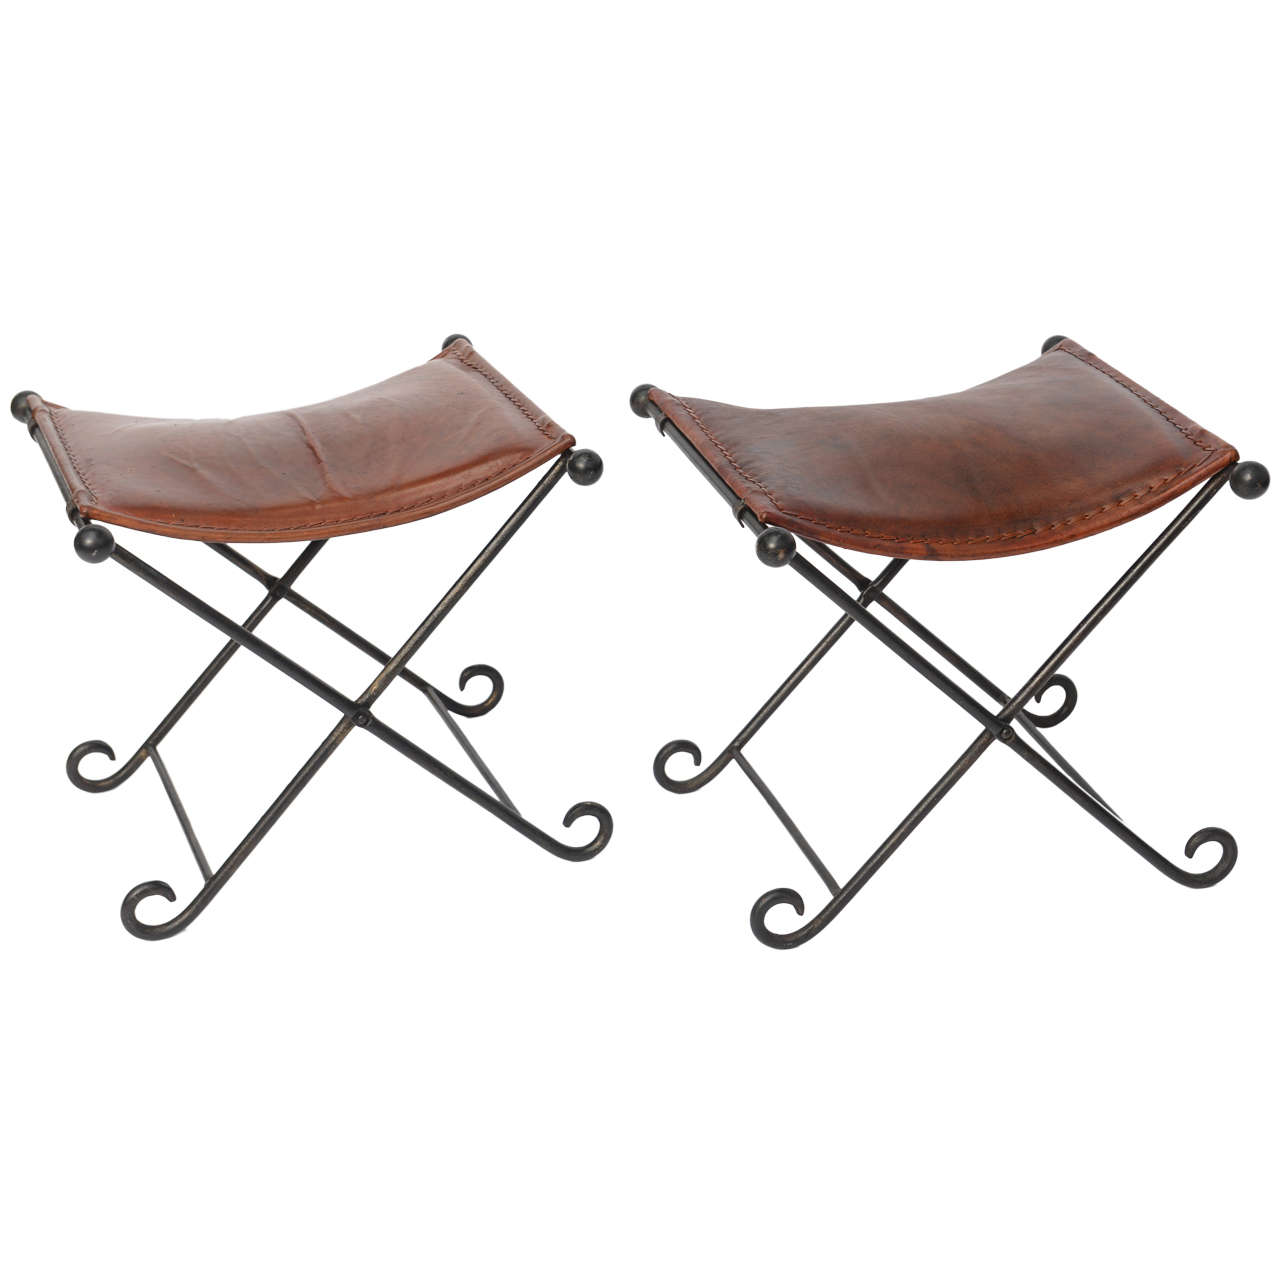 Pair of 1940s Art Deco Leather Seated Iron X-Benches